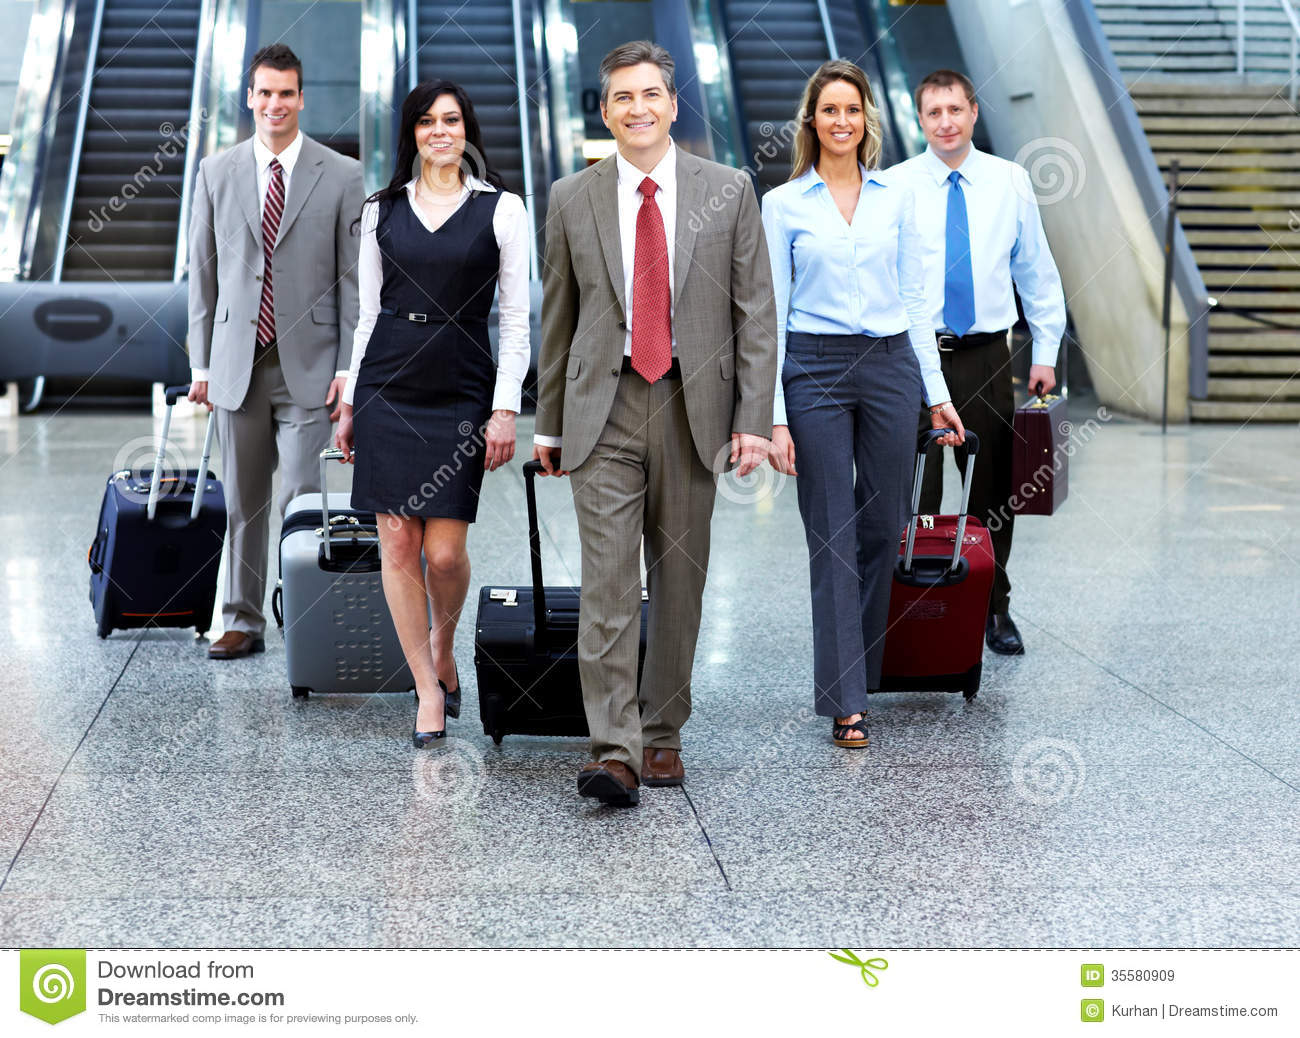 Free Images Traveling People Airport Bridge Business: Group Of Business People In Airport. Stock Image